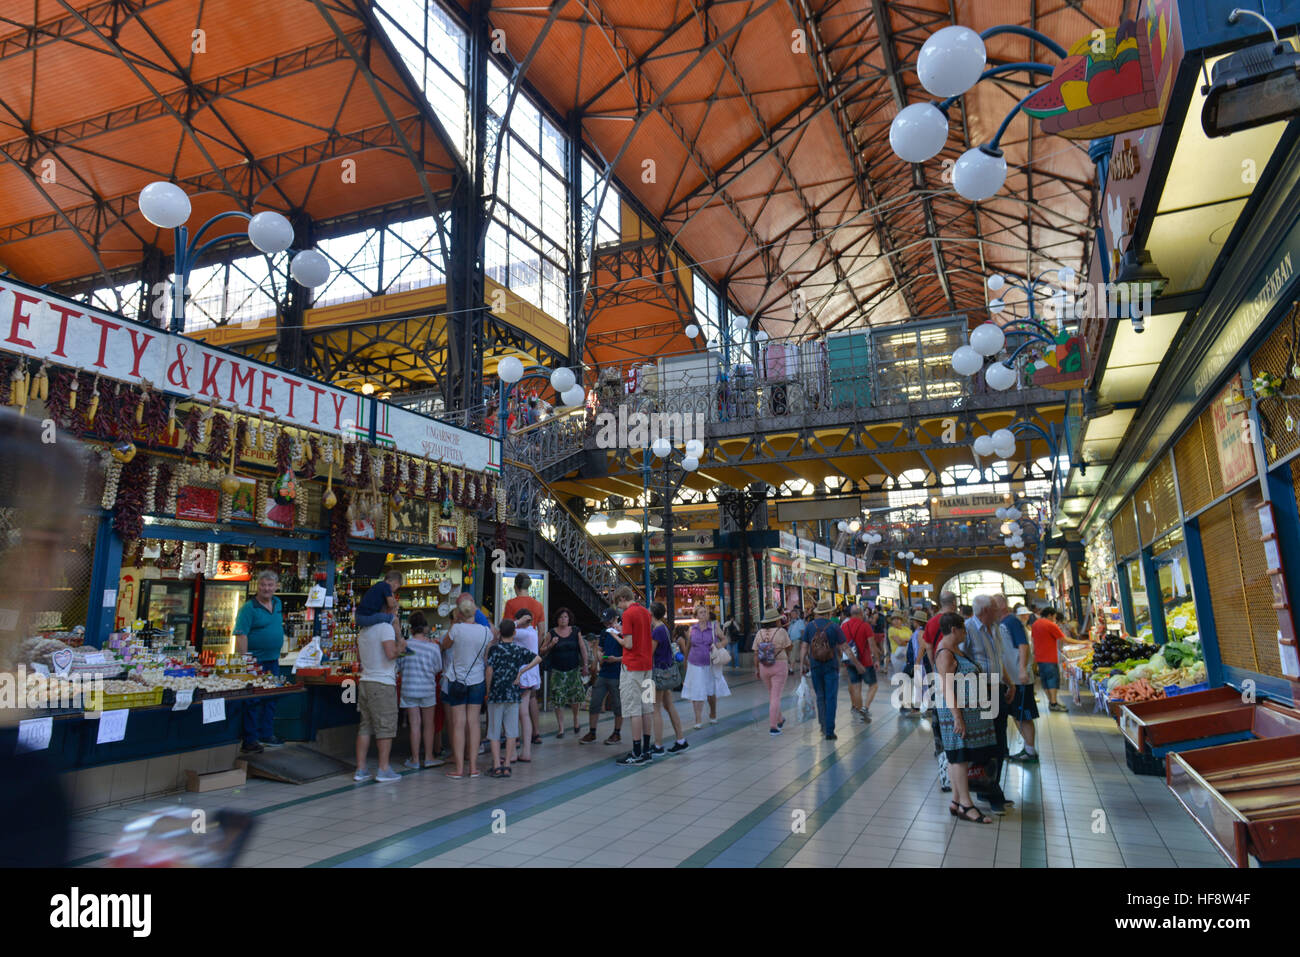 Grosse Markthalle, Budapest, Ungarn, Big covered market, Hungarian - Stock Image